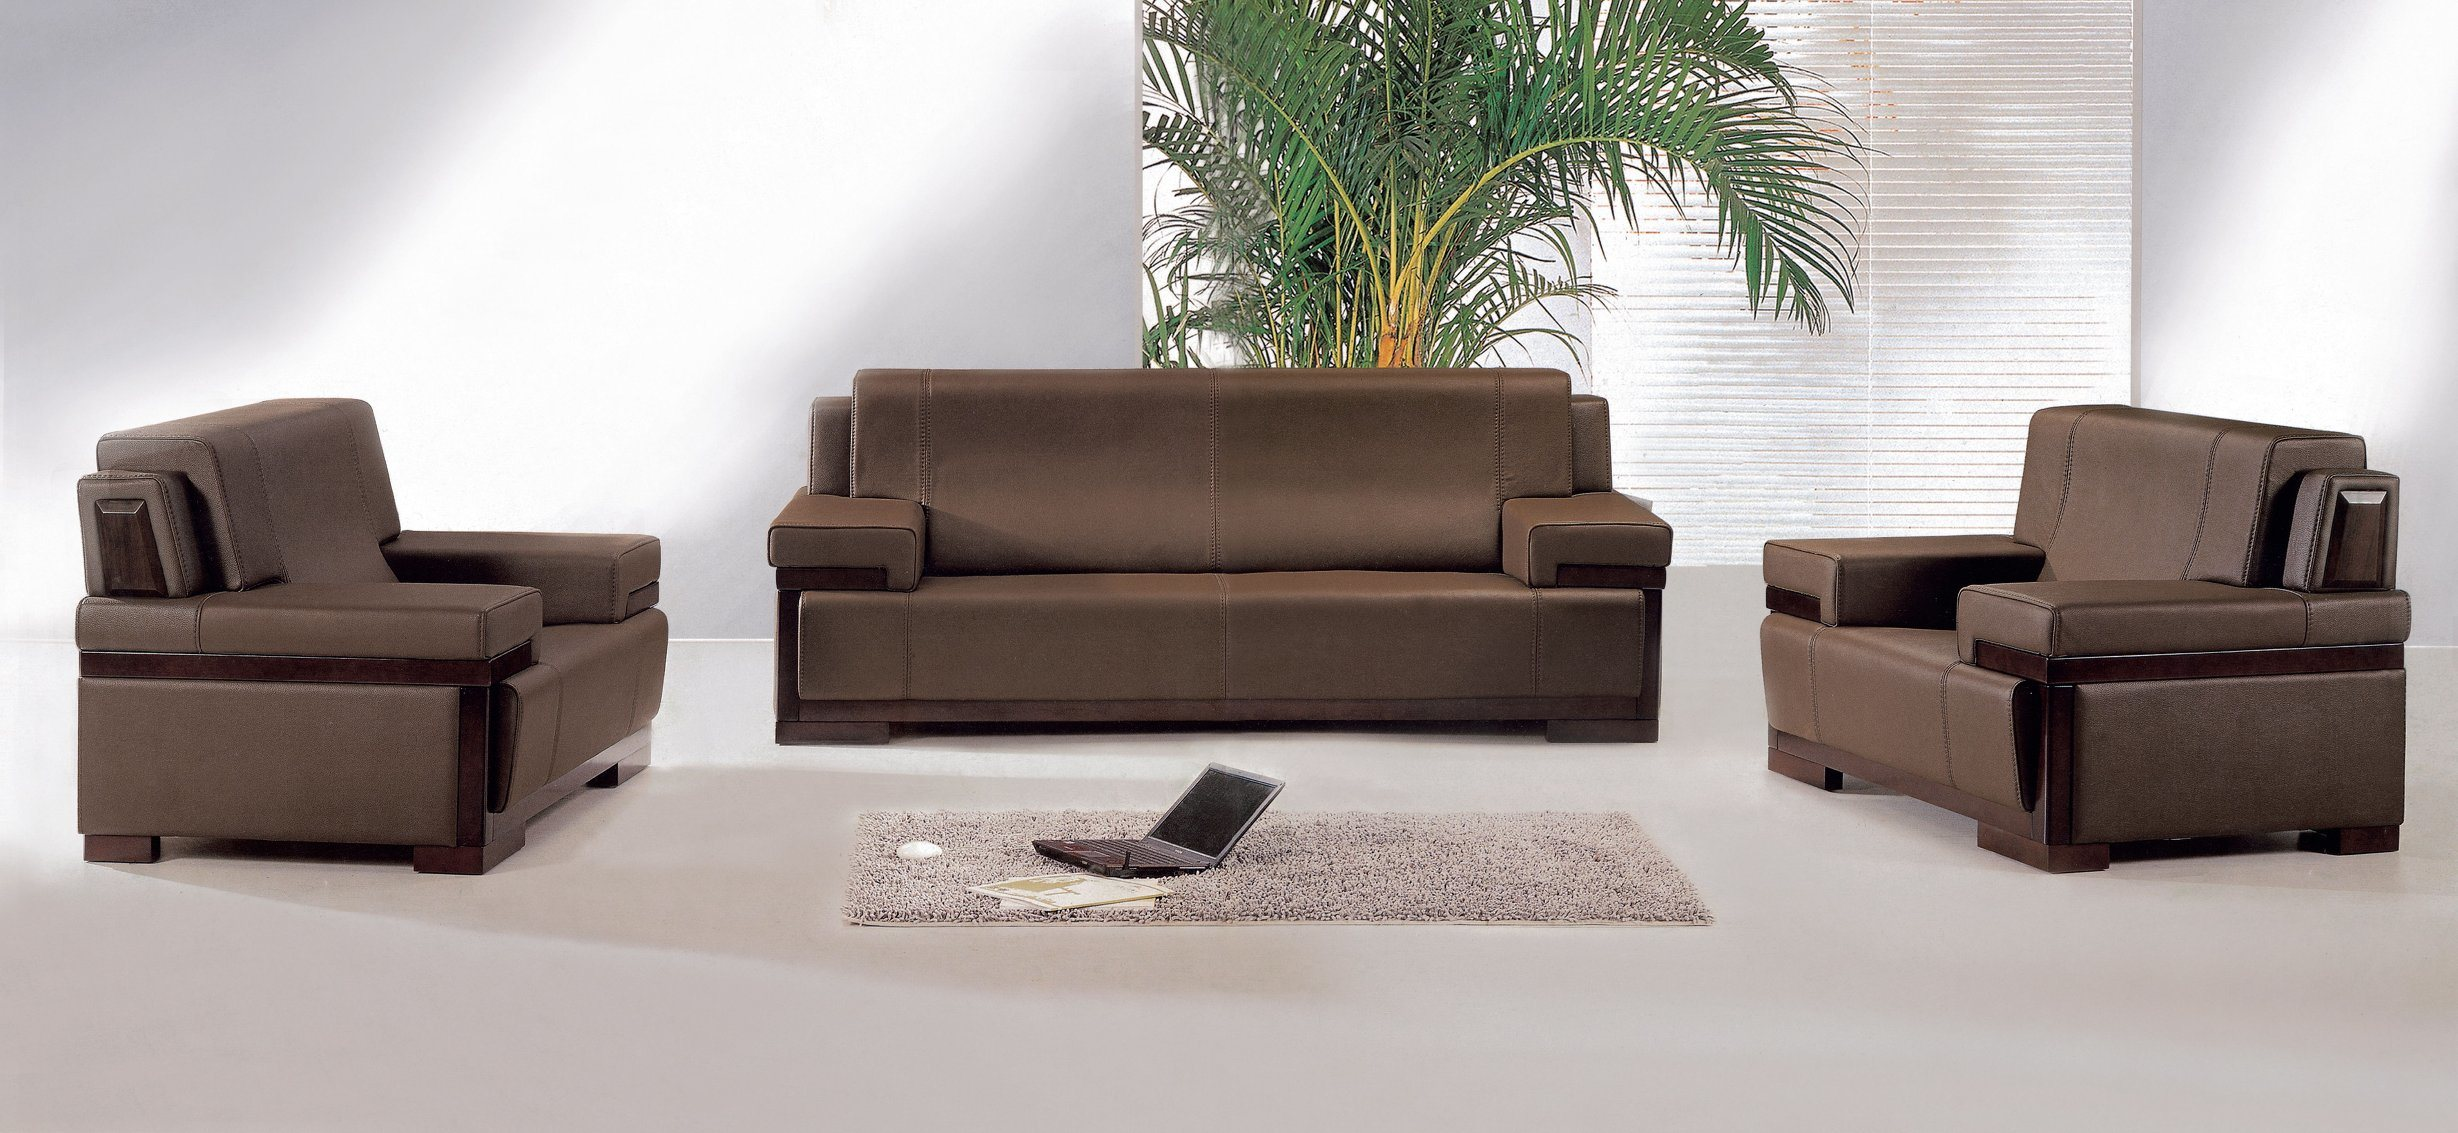 Sofa Test Hot Item Sgs Test Quality Sofa Office Sofa Fece382